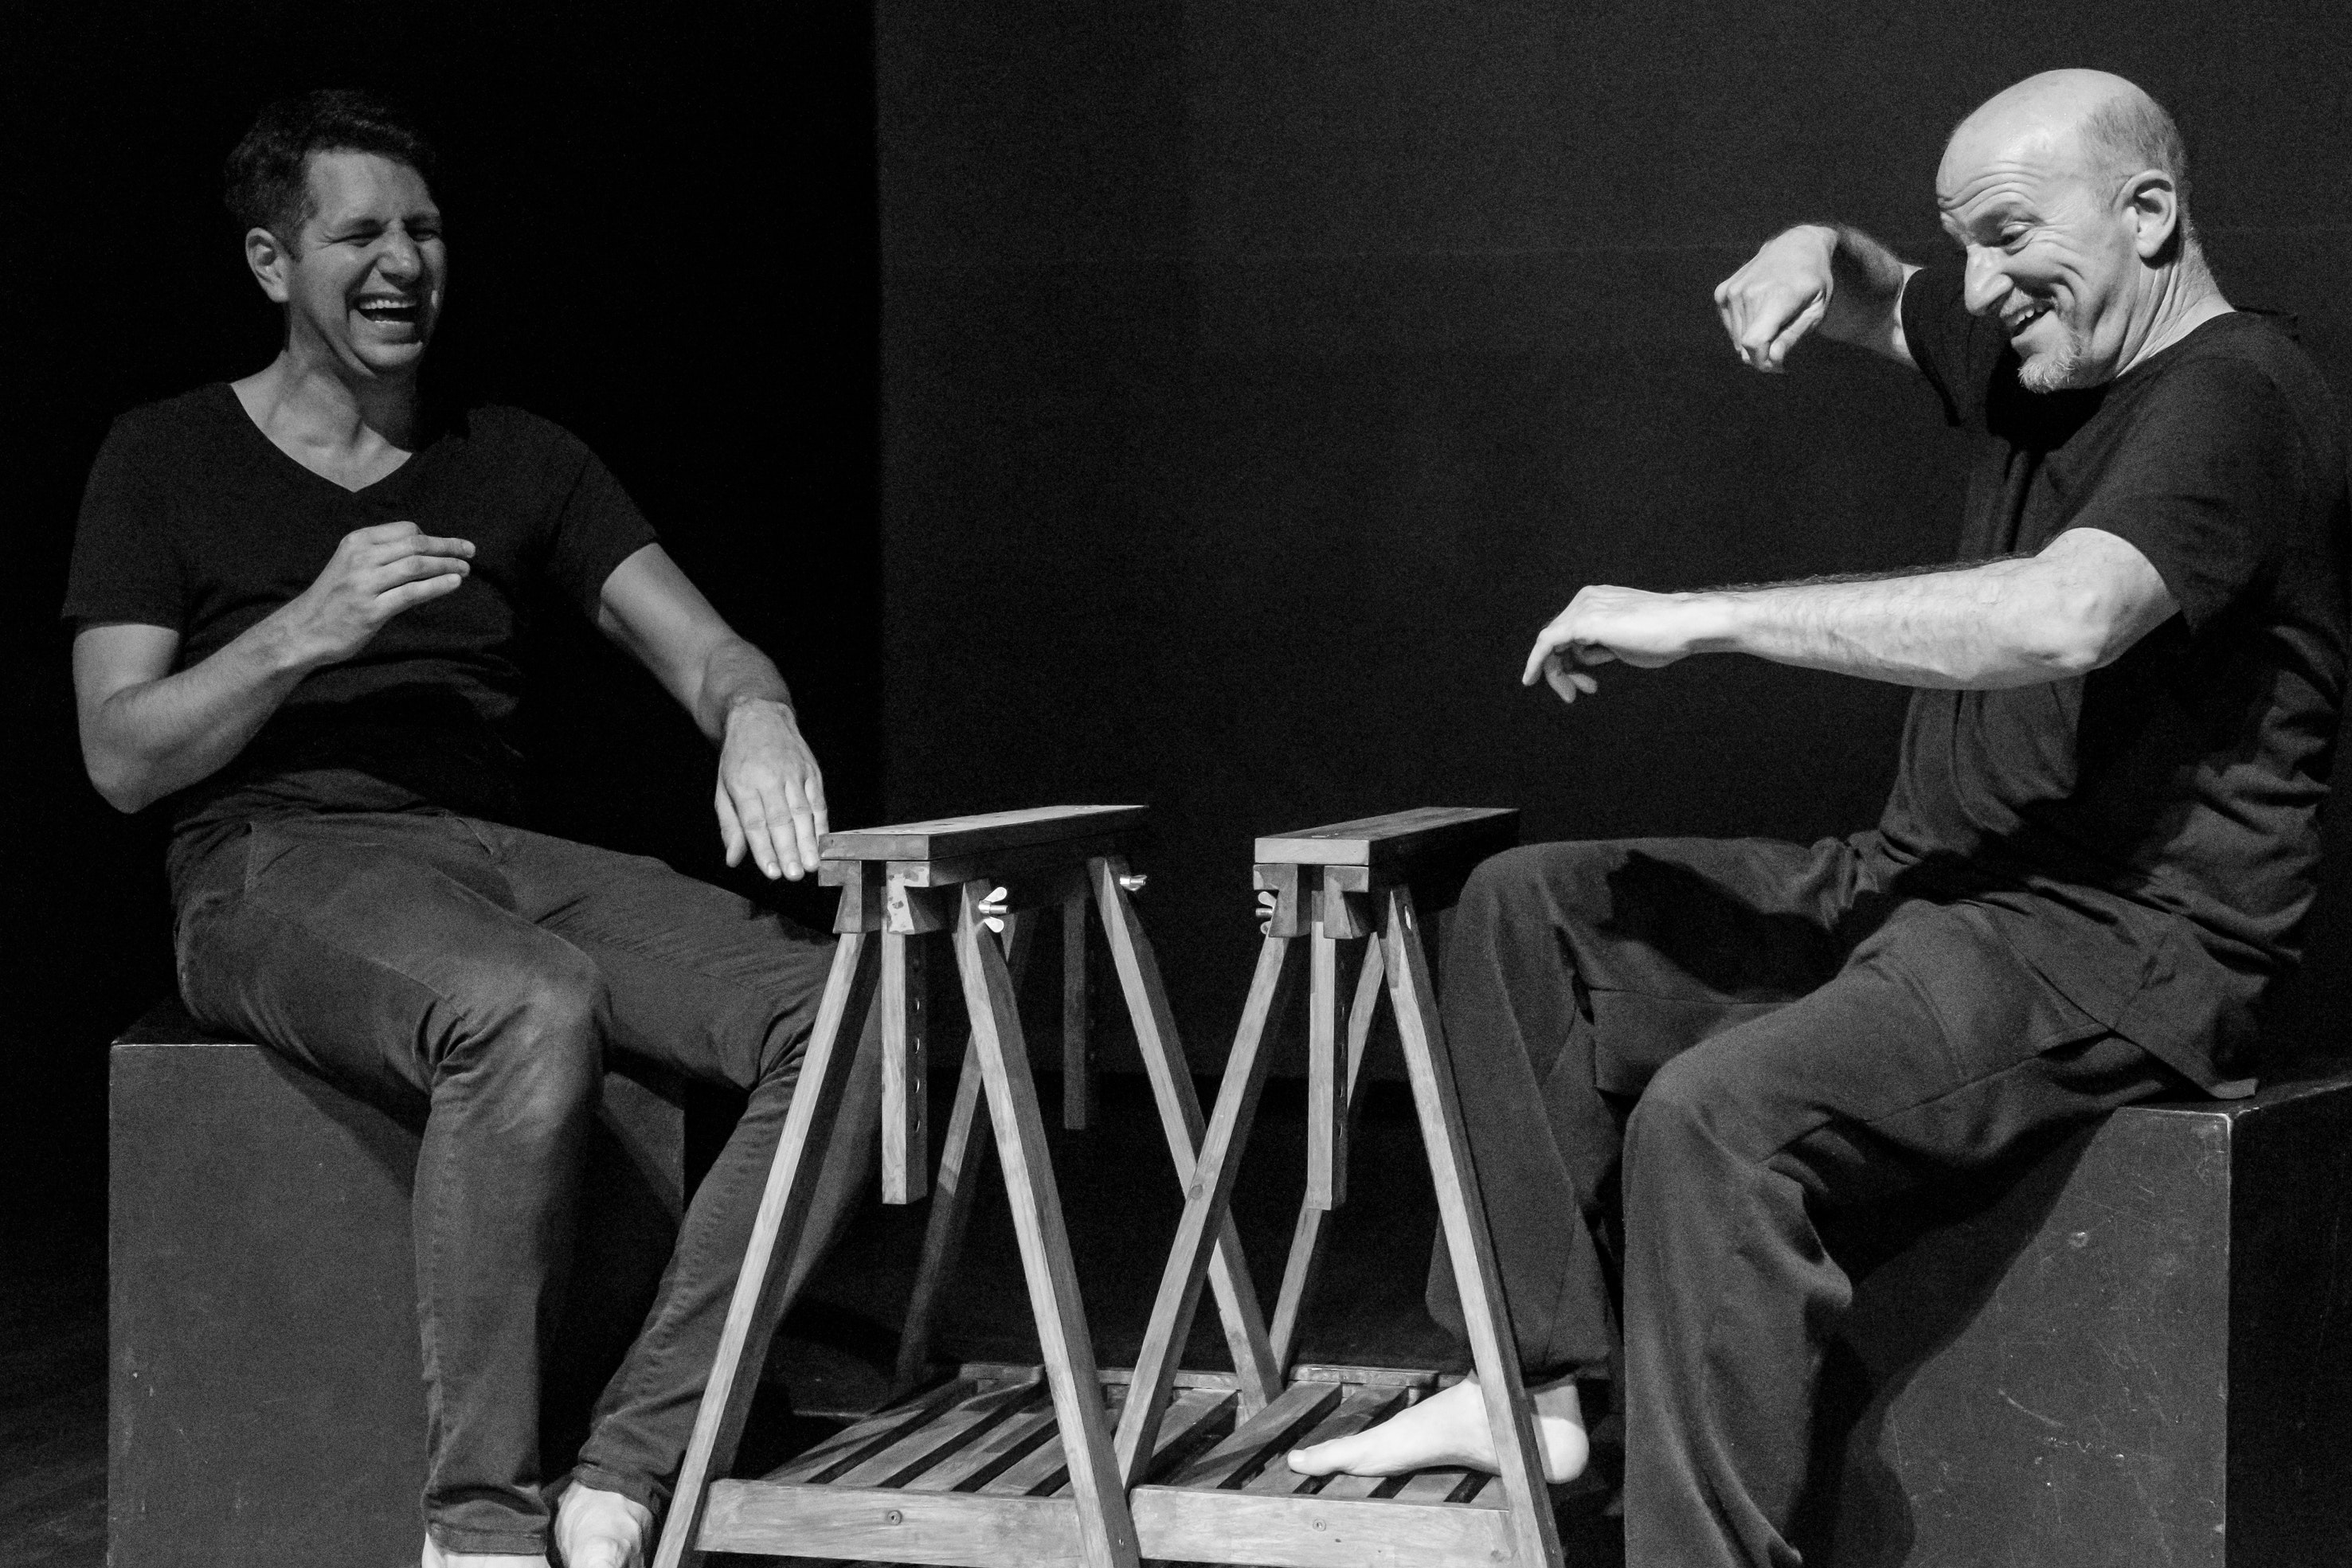 One story, two languages: sign and spoken language share the theatre stage